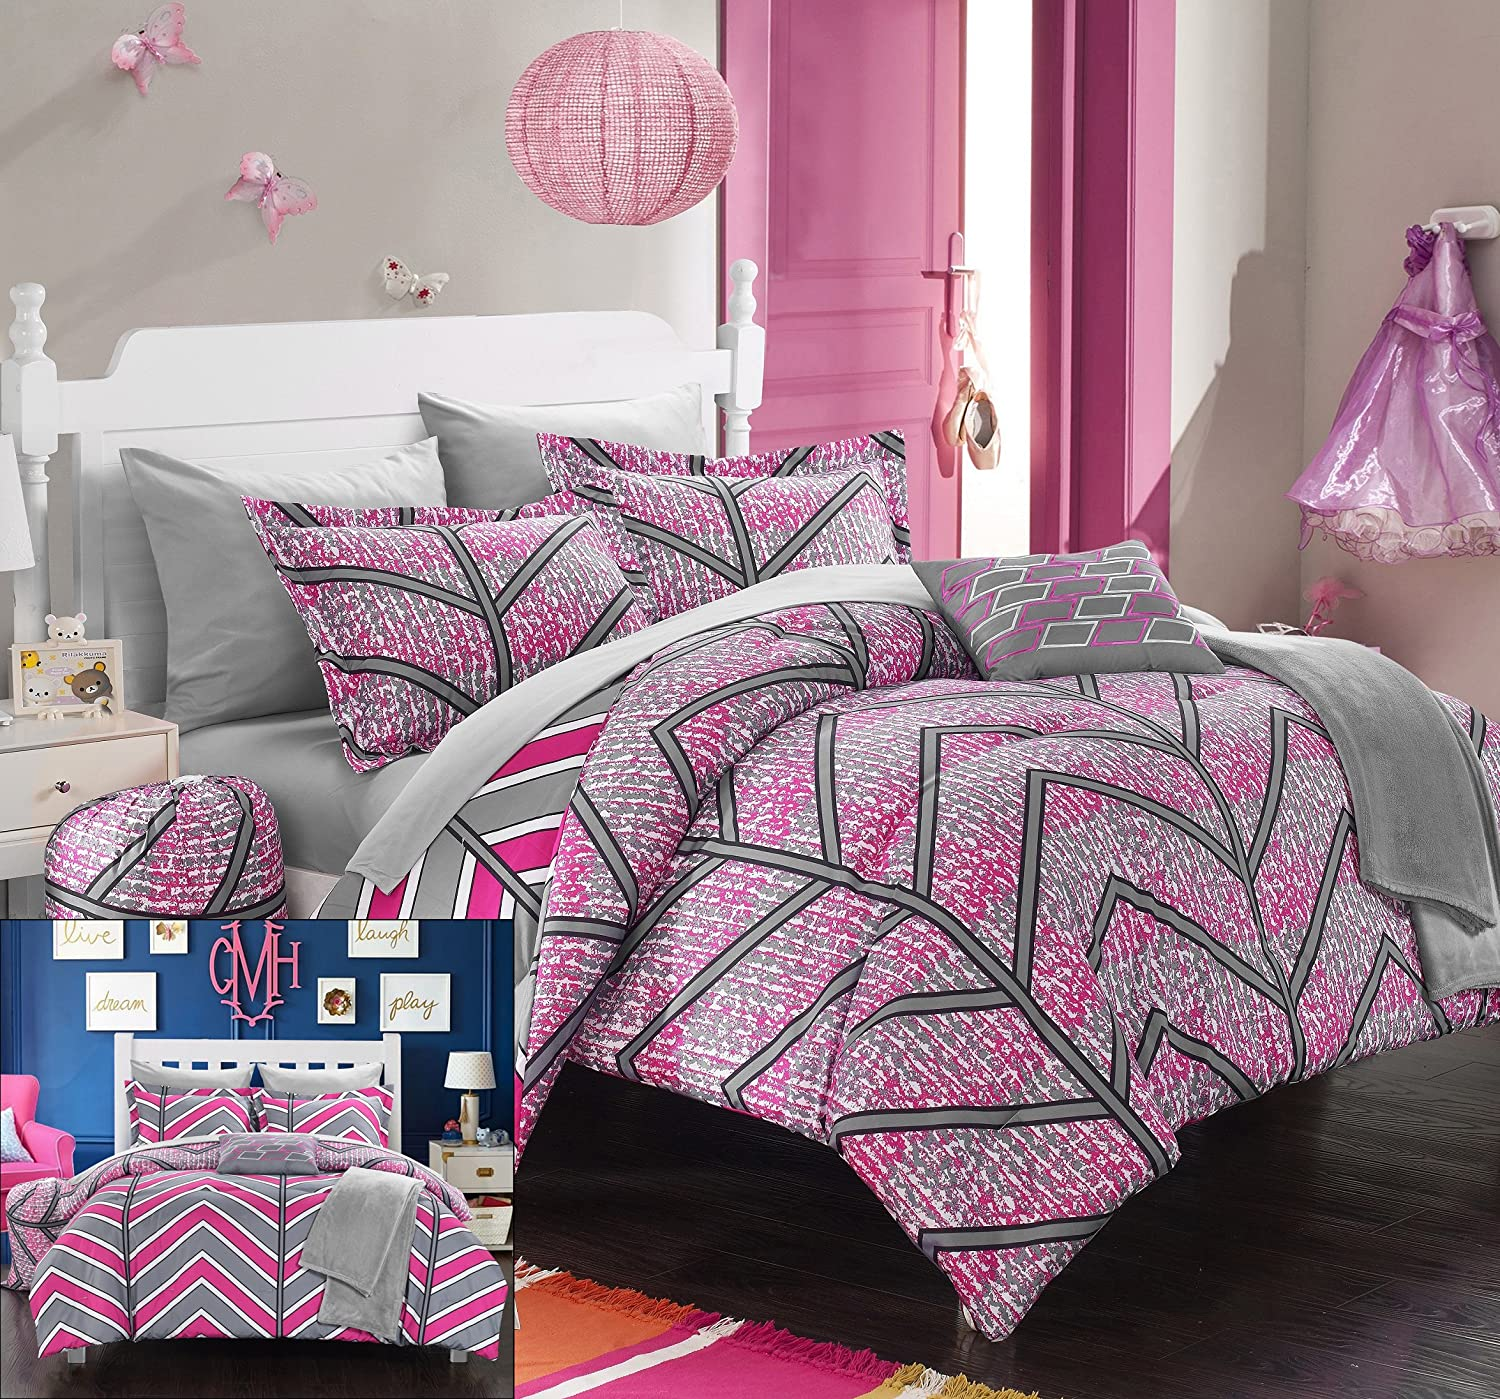 Chic Home 8 Piece Laredo Chevron and Geometric Printed Reversible Comforter Sheet Set